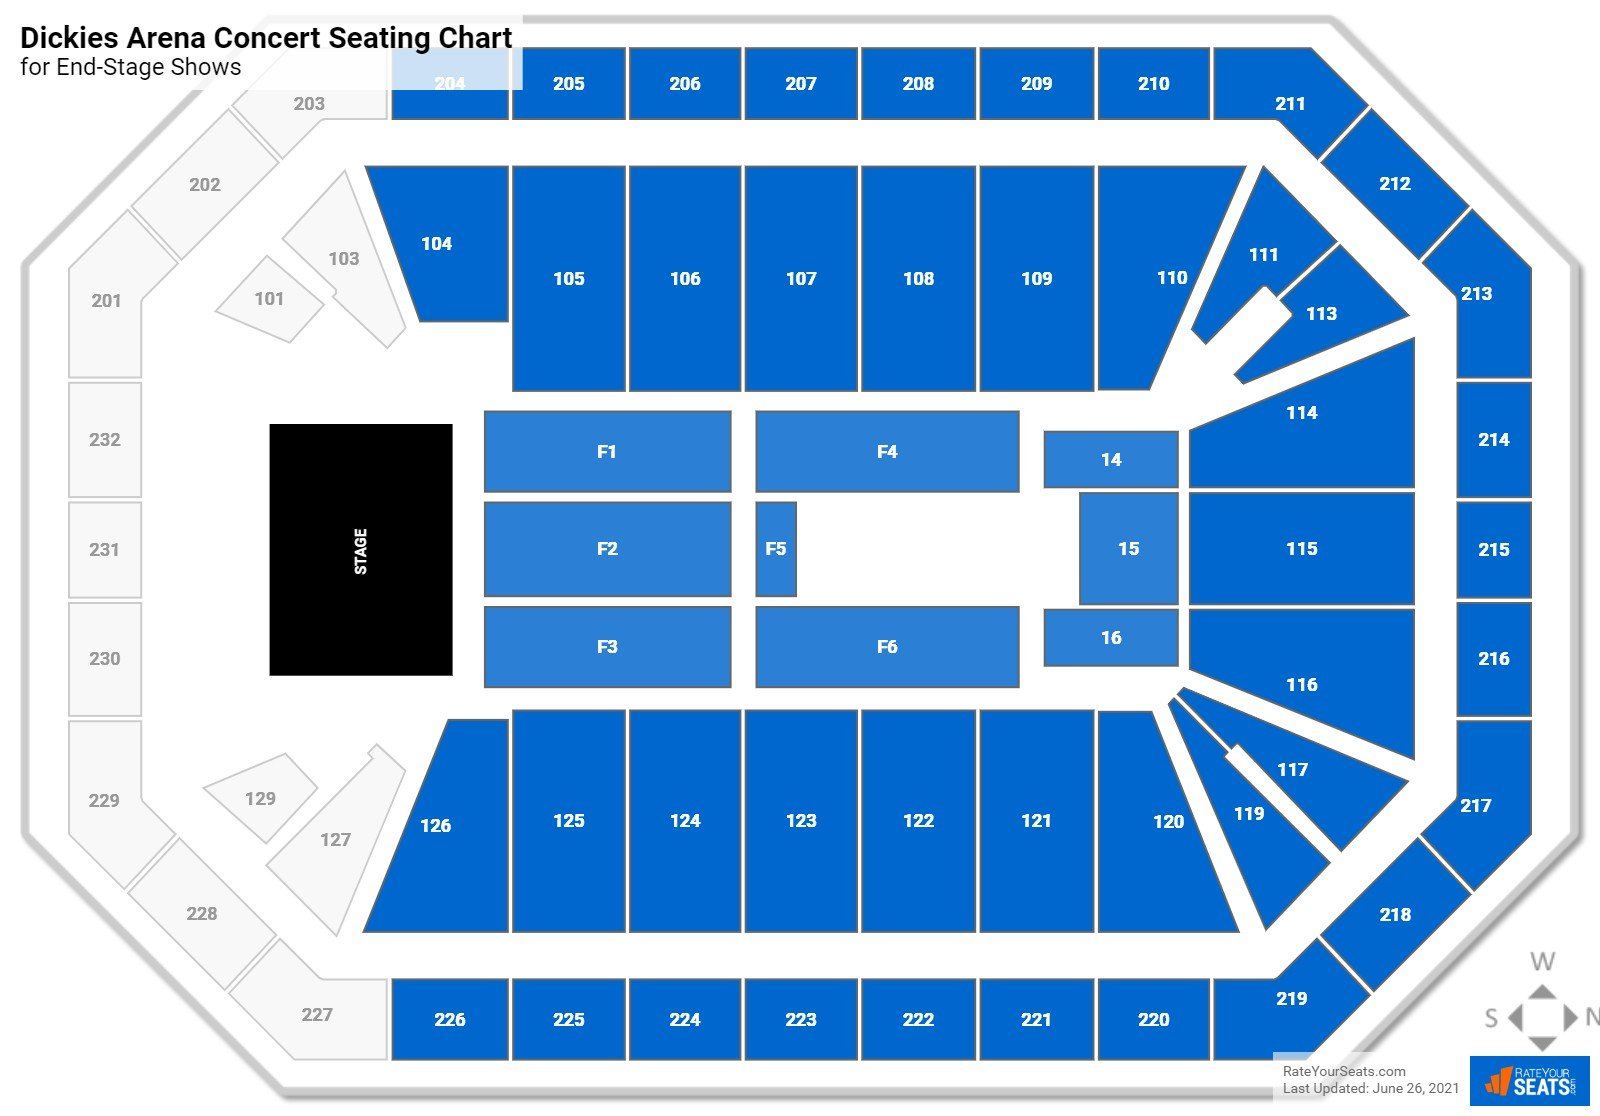 Dickies Arena Seating Chart for Concerts